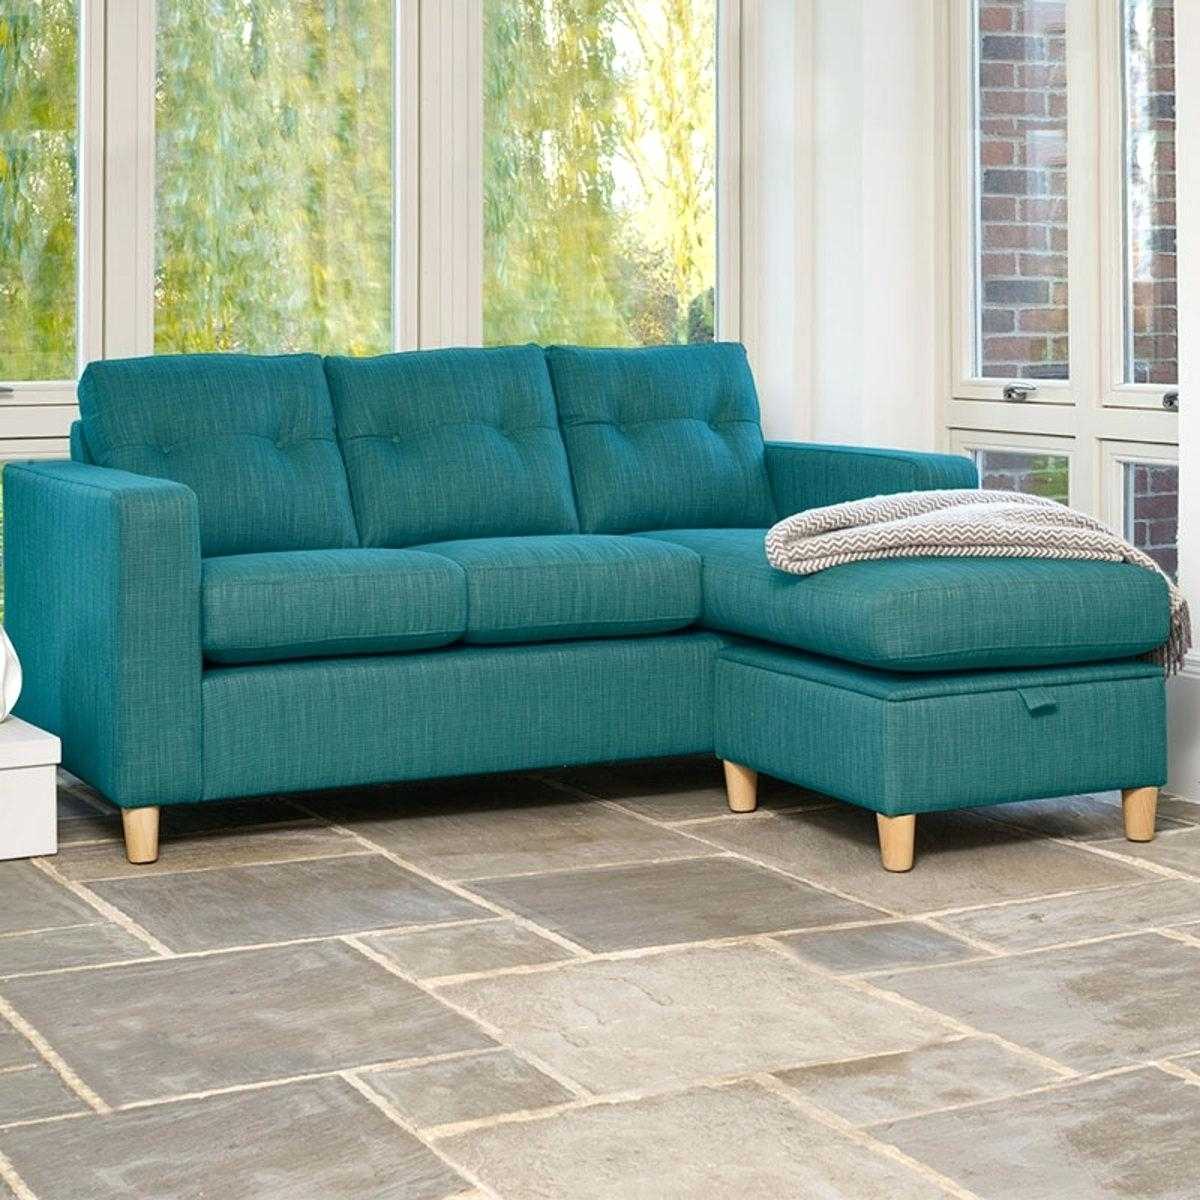 Teal Sofa Bed Target Sectional Sofas For Sale Pertaining To Target Sectional Sofas (Image 10 of 10)